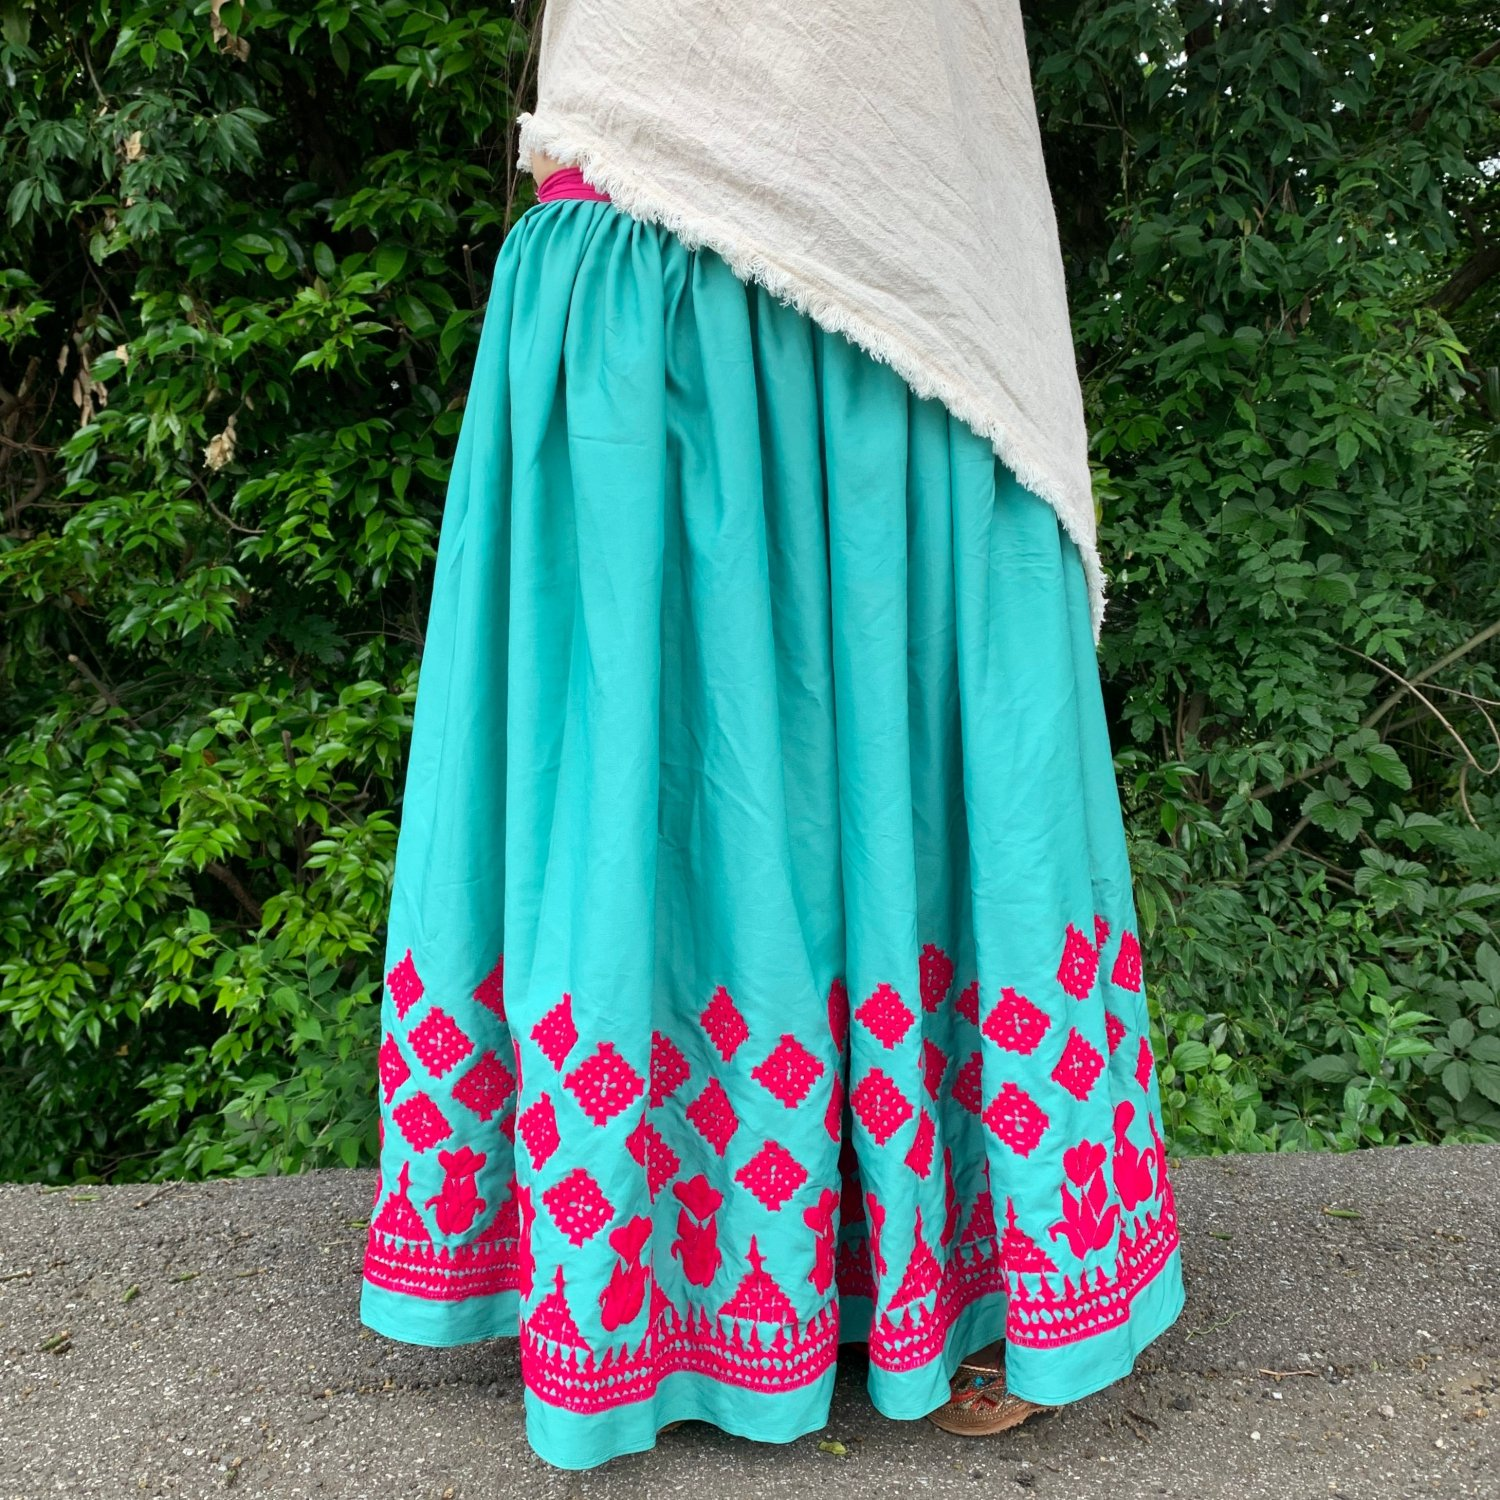 <img class='new_mark_img1' src='https://img.shop-pro.jp/img/new/icons1.gif' style='border:none;display:inline;margin:0px;padding:0px;width:auto;' />Rajasthani gypsy skirt #* vintage * インド刺繍スカート バンジャラ《ミント》